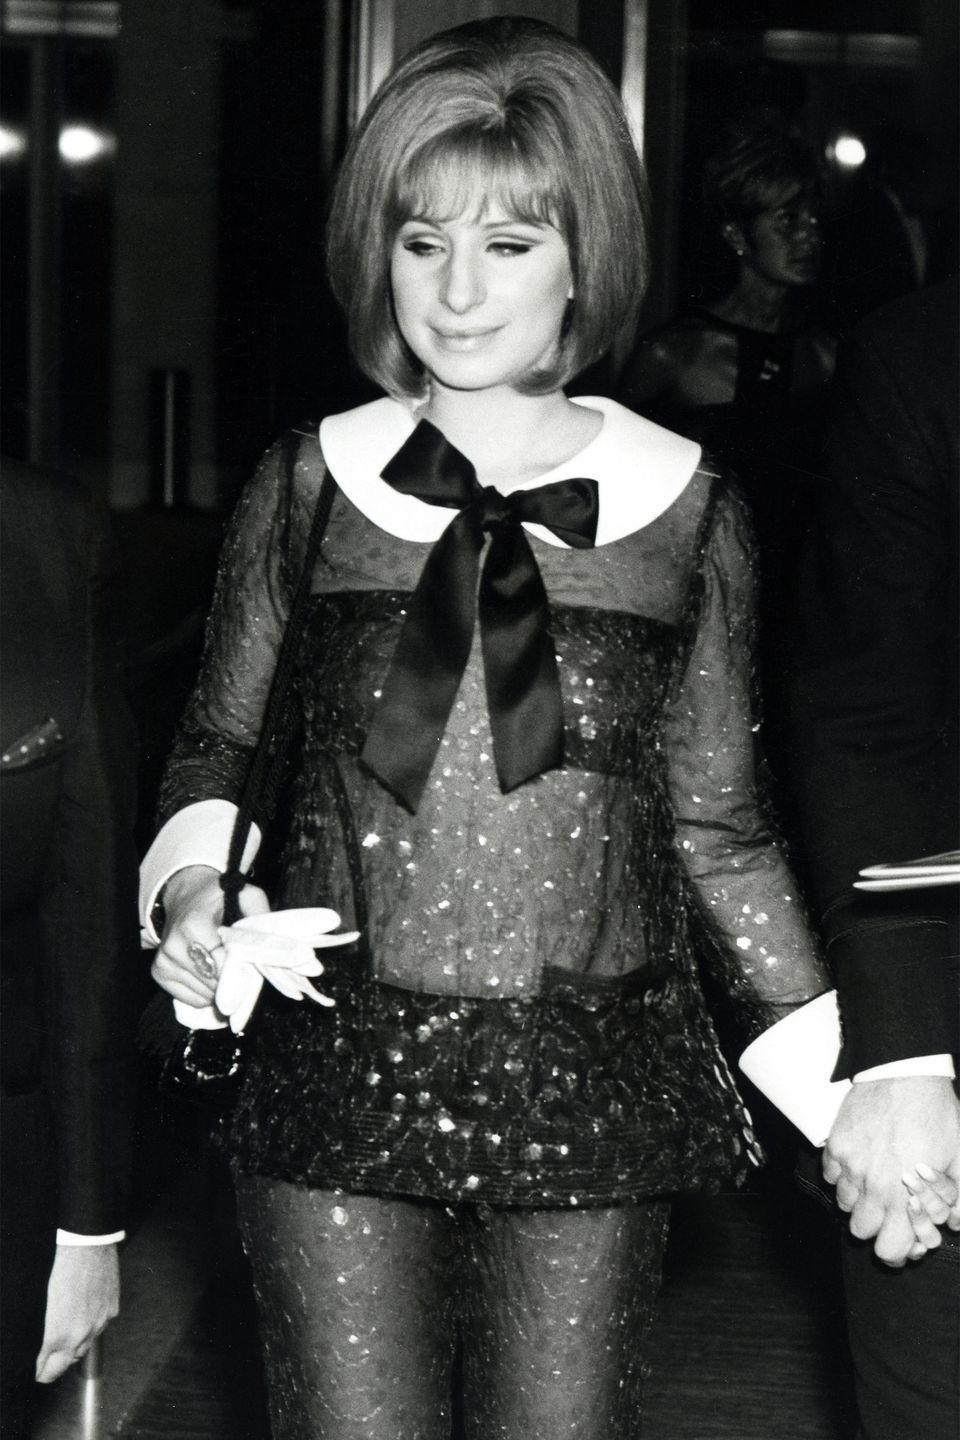 <p>Barbra Streisand won best actress for <em>Funny Girl</em>, and also caused commotion in this sheer mod Arnold Scaasi dress. </p>